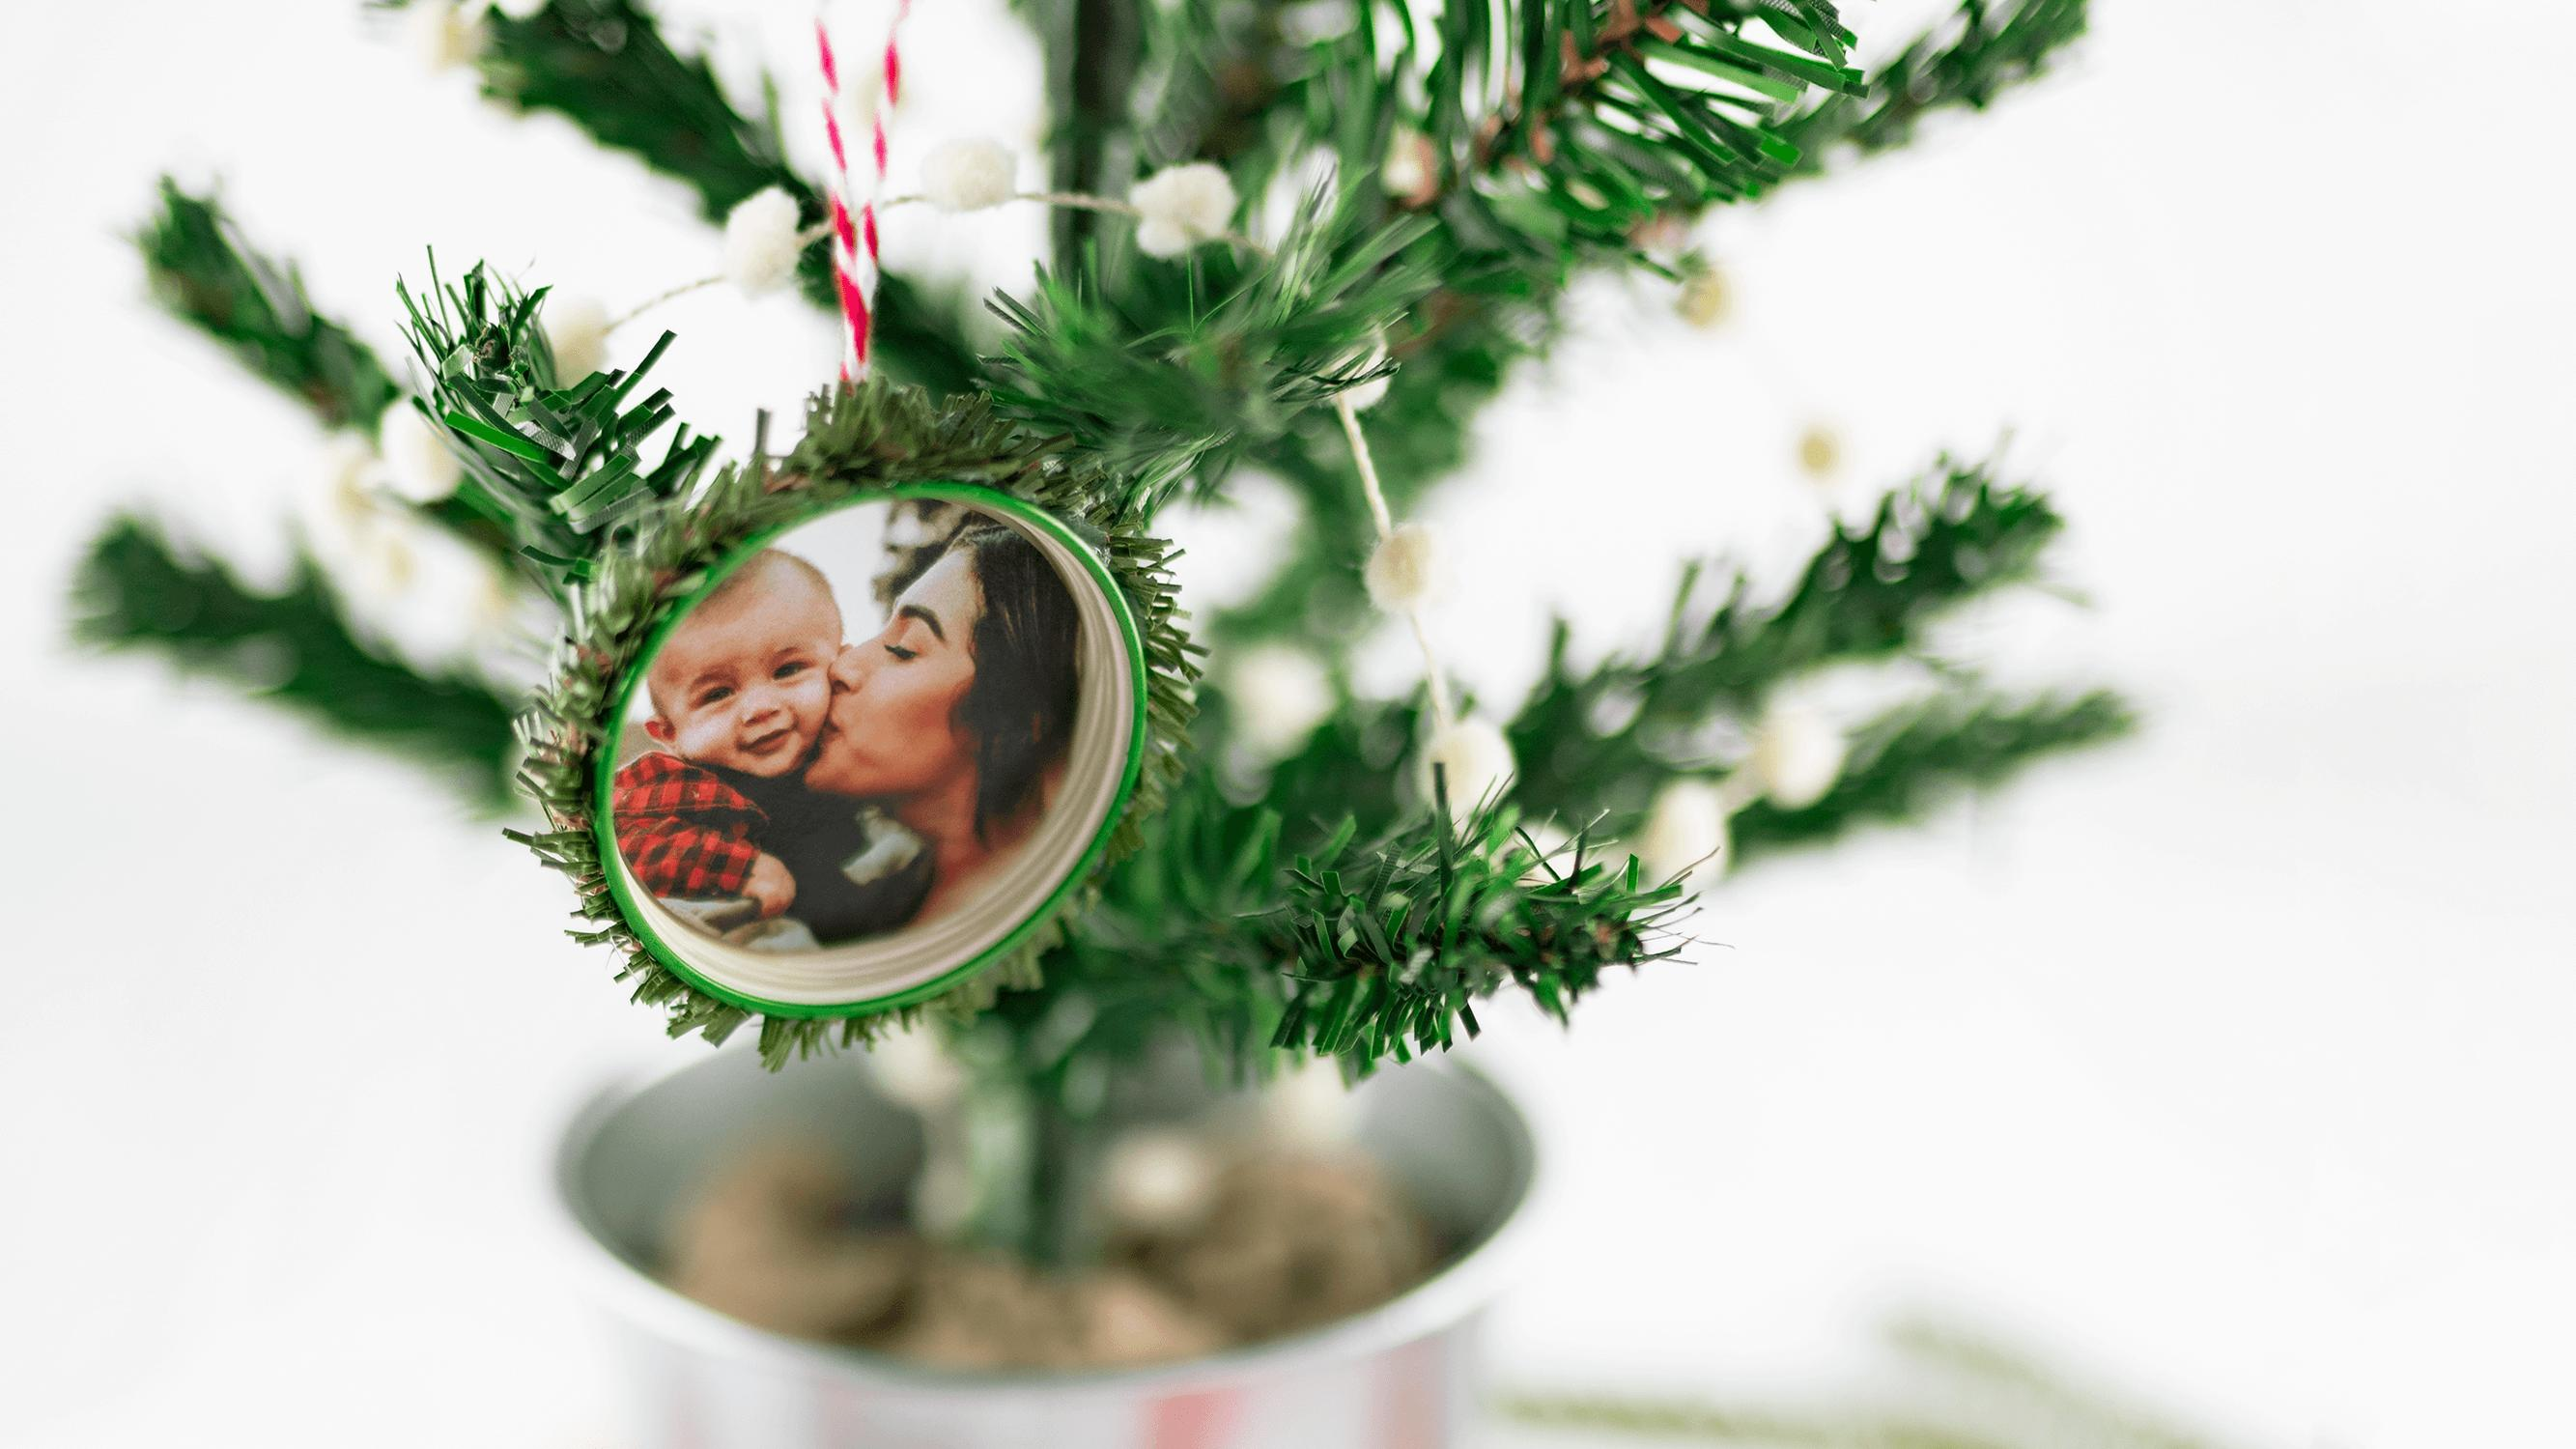 Hang on a tree or use as a personalized gift tag